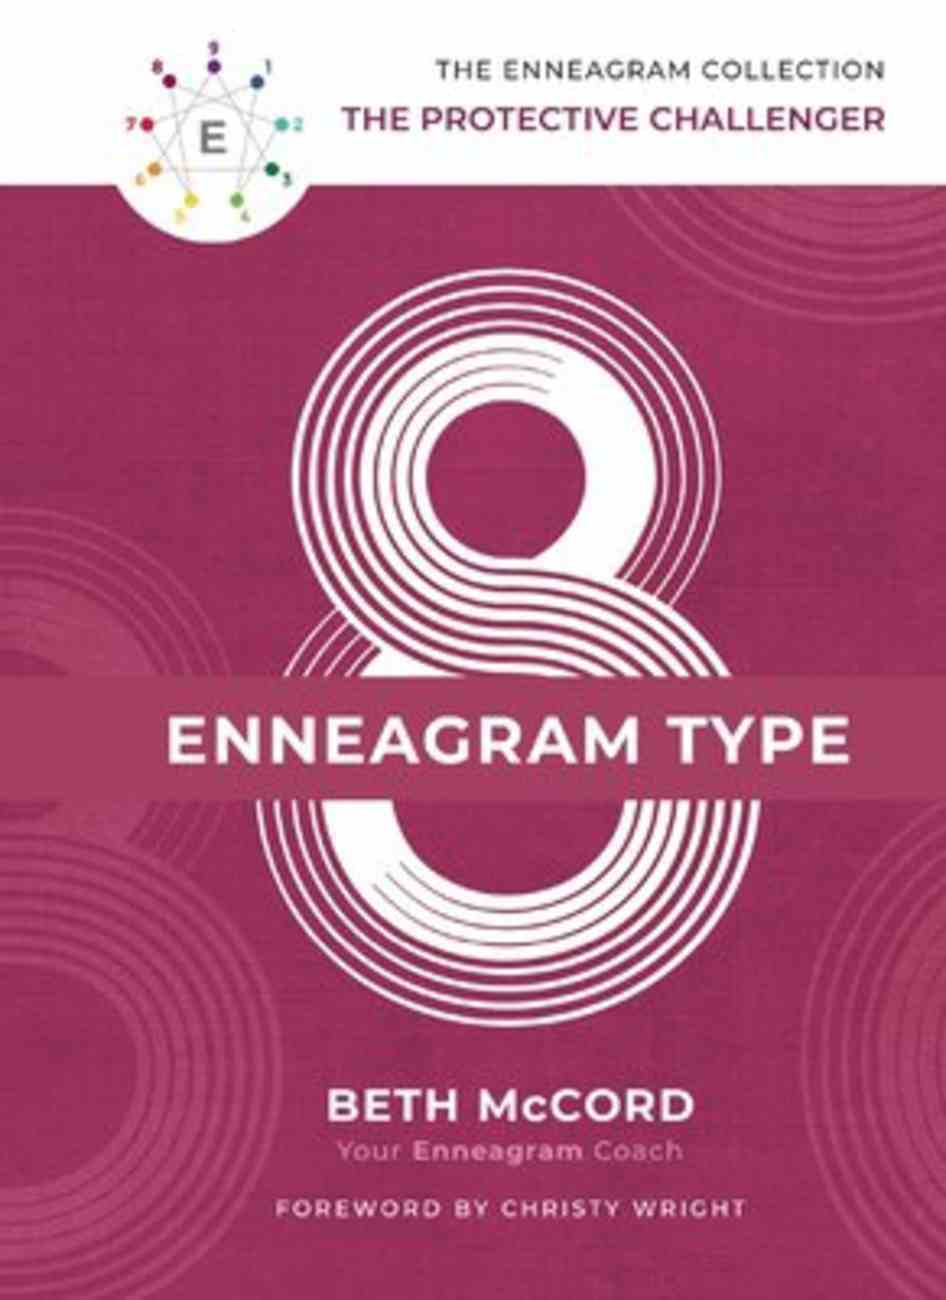 Enneagram Collection Type 8: The Protective Challenger (Enneagram Collection) Hardback